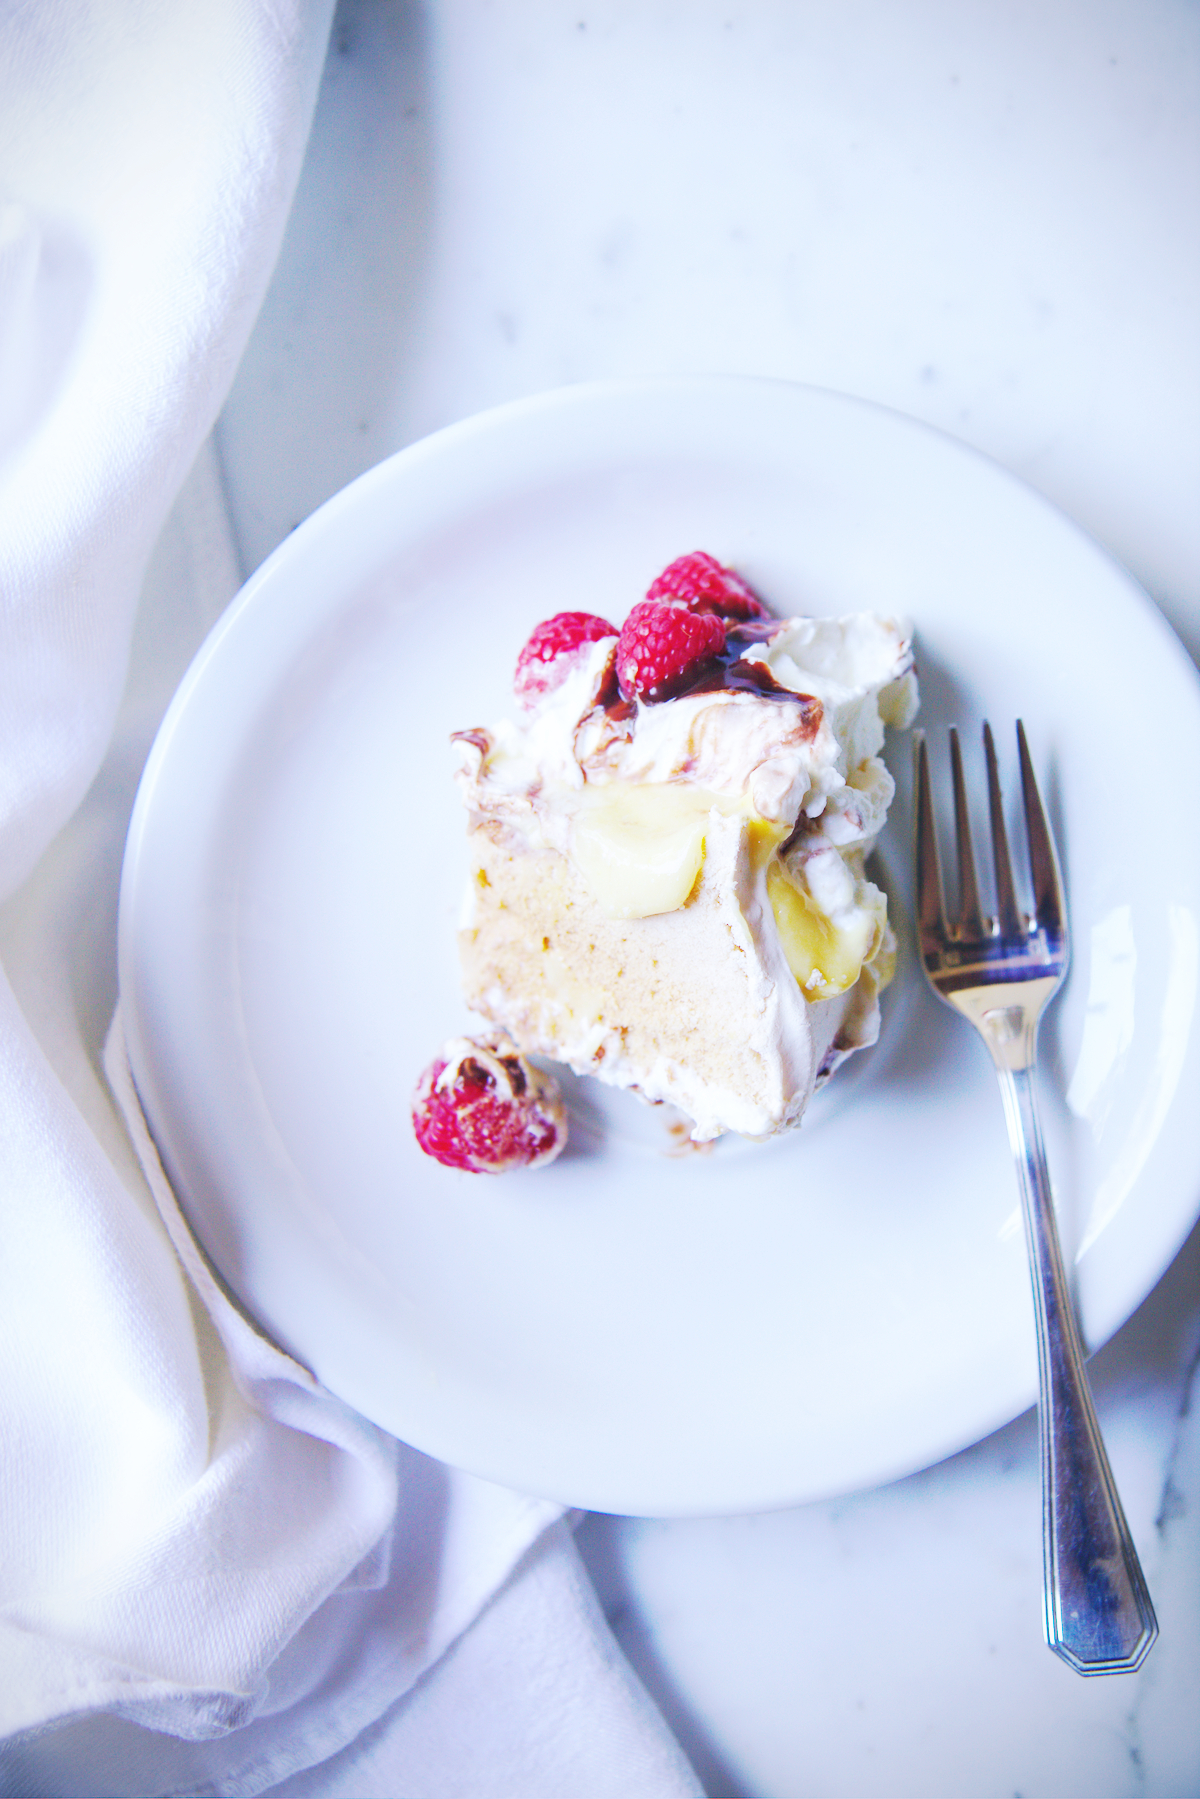 Passionfruit, Raspberry, and Chocolate Pavlova | La Pêche Fraîche